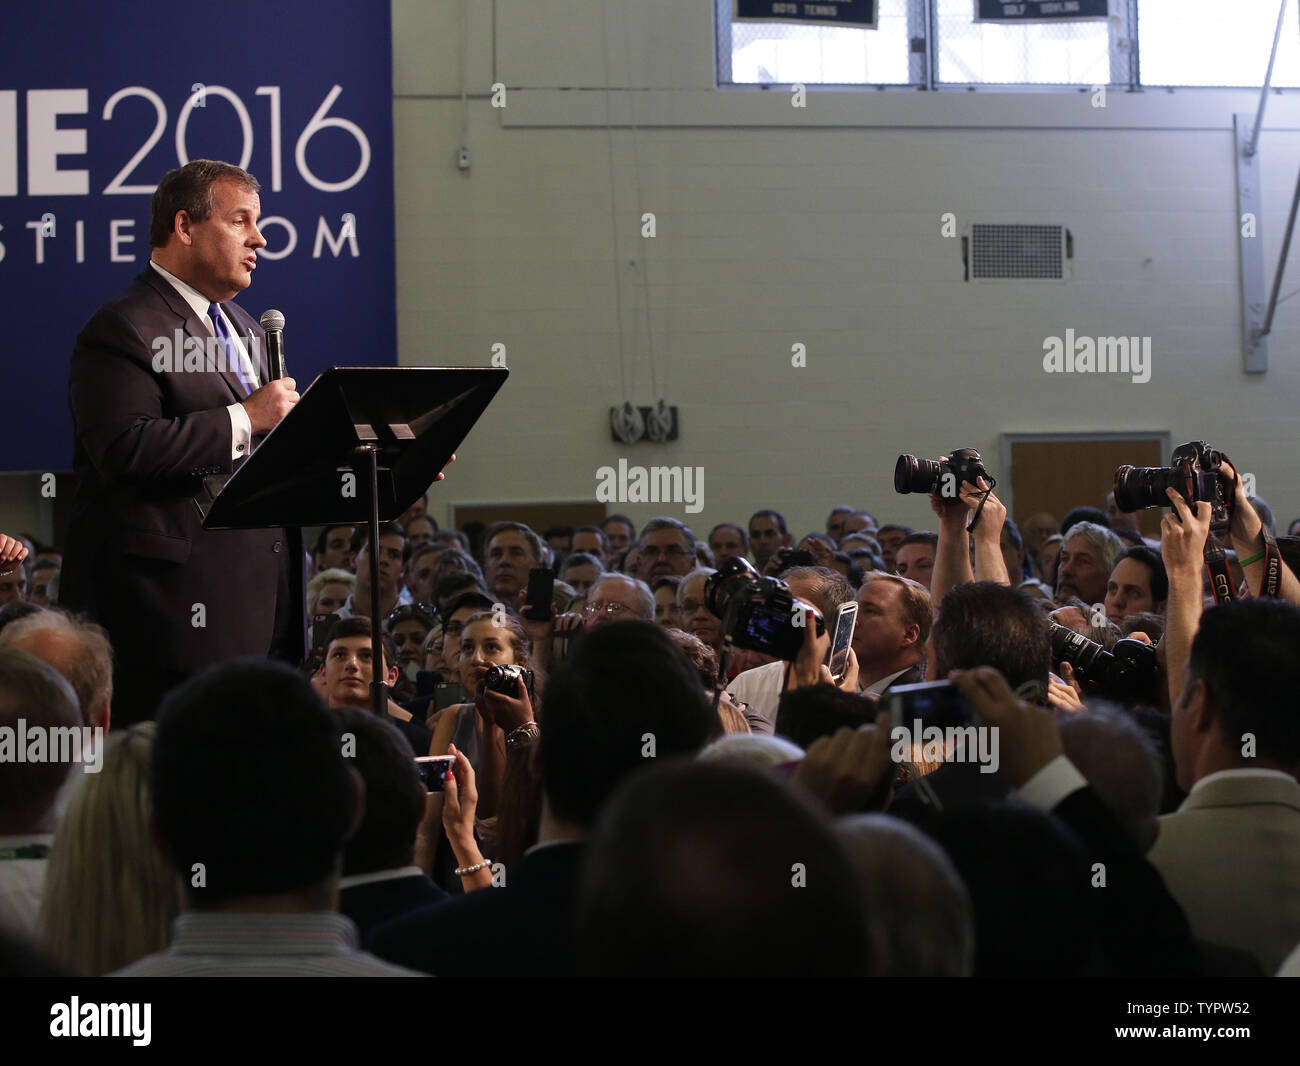 New Jersey Governor Chris Christie speaks on stage at his Presidential Campaign Launch in the Gym of Livingston High School in Livingston, NJ on June 30, 2015. Chris Christie is the 14th Republican running for the White House.         Photo by John Angelillo/UPI - Stock Image